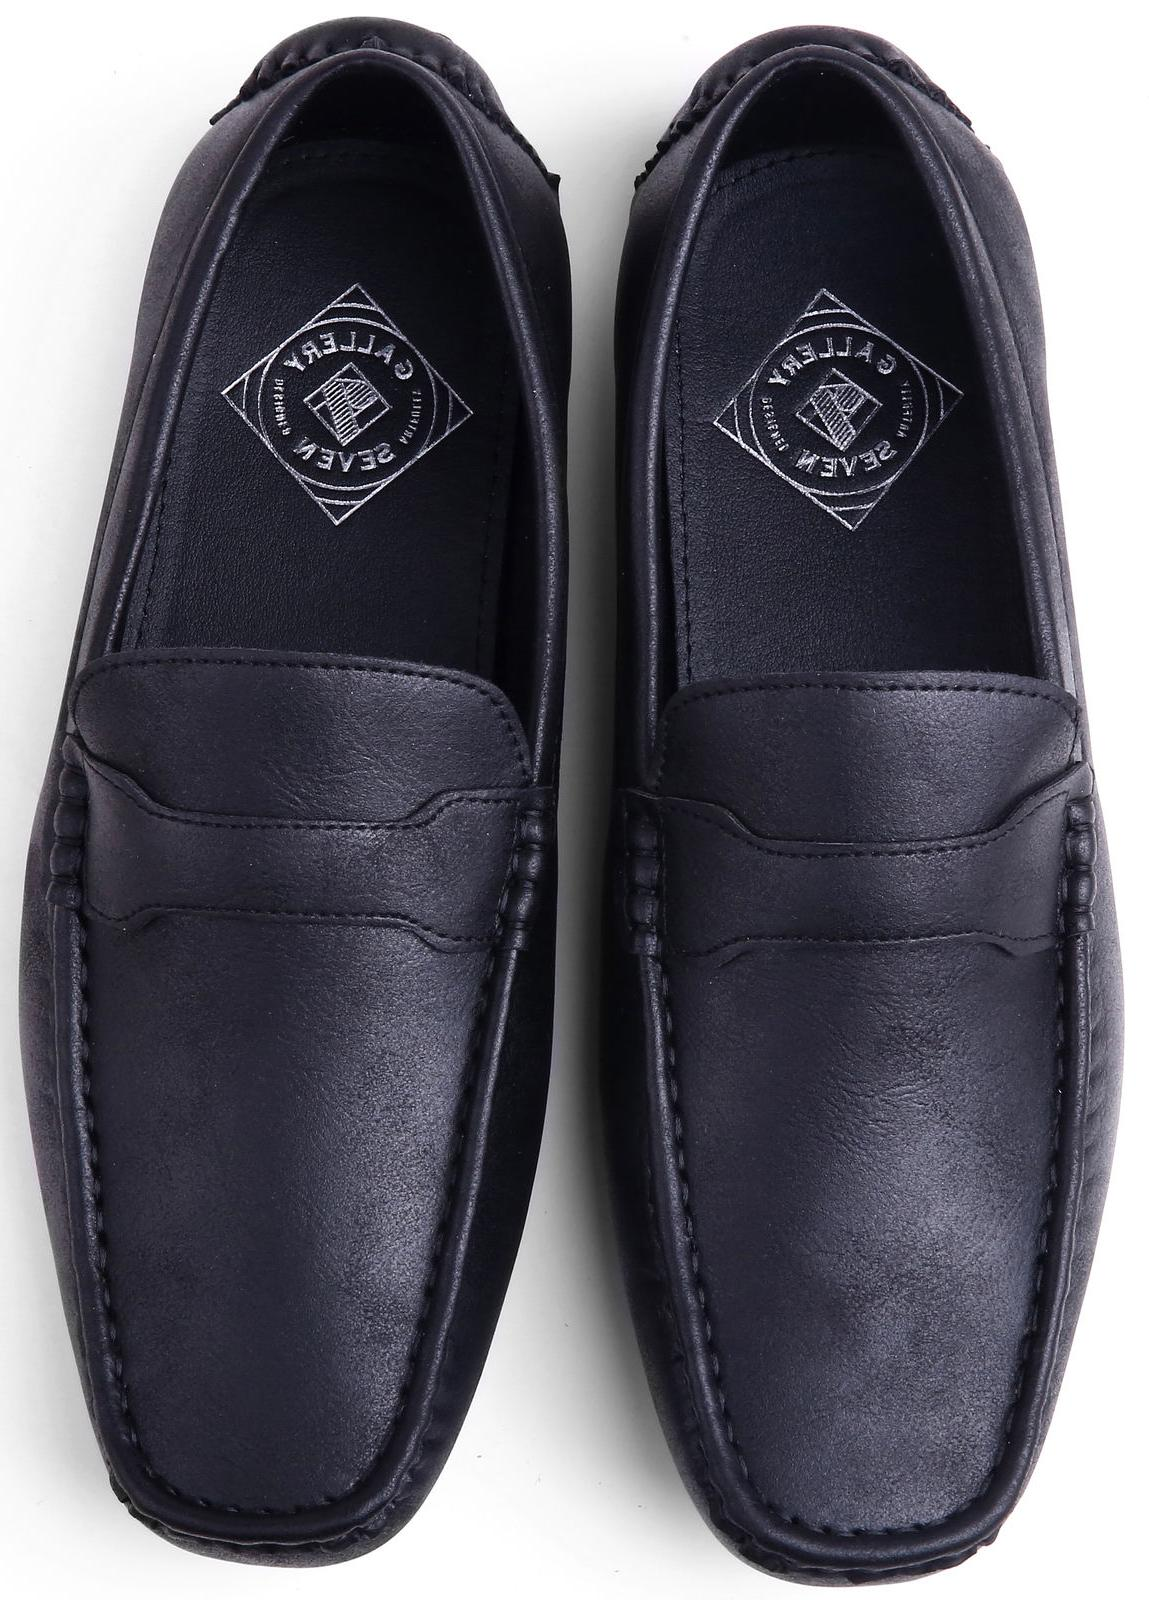 Gallery Driving for Men - Casual Moccasin